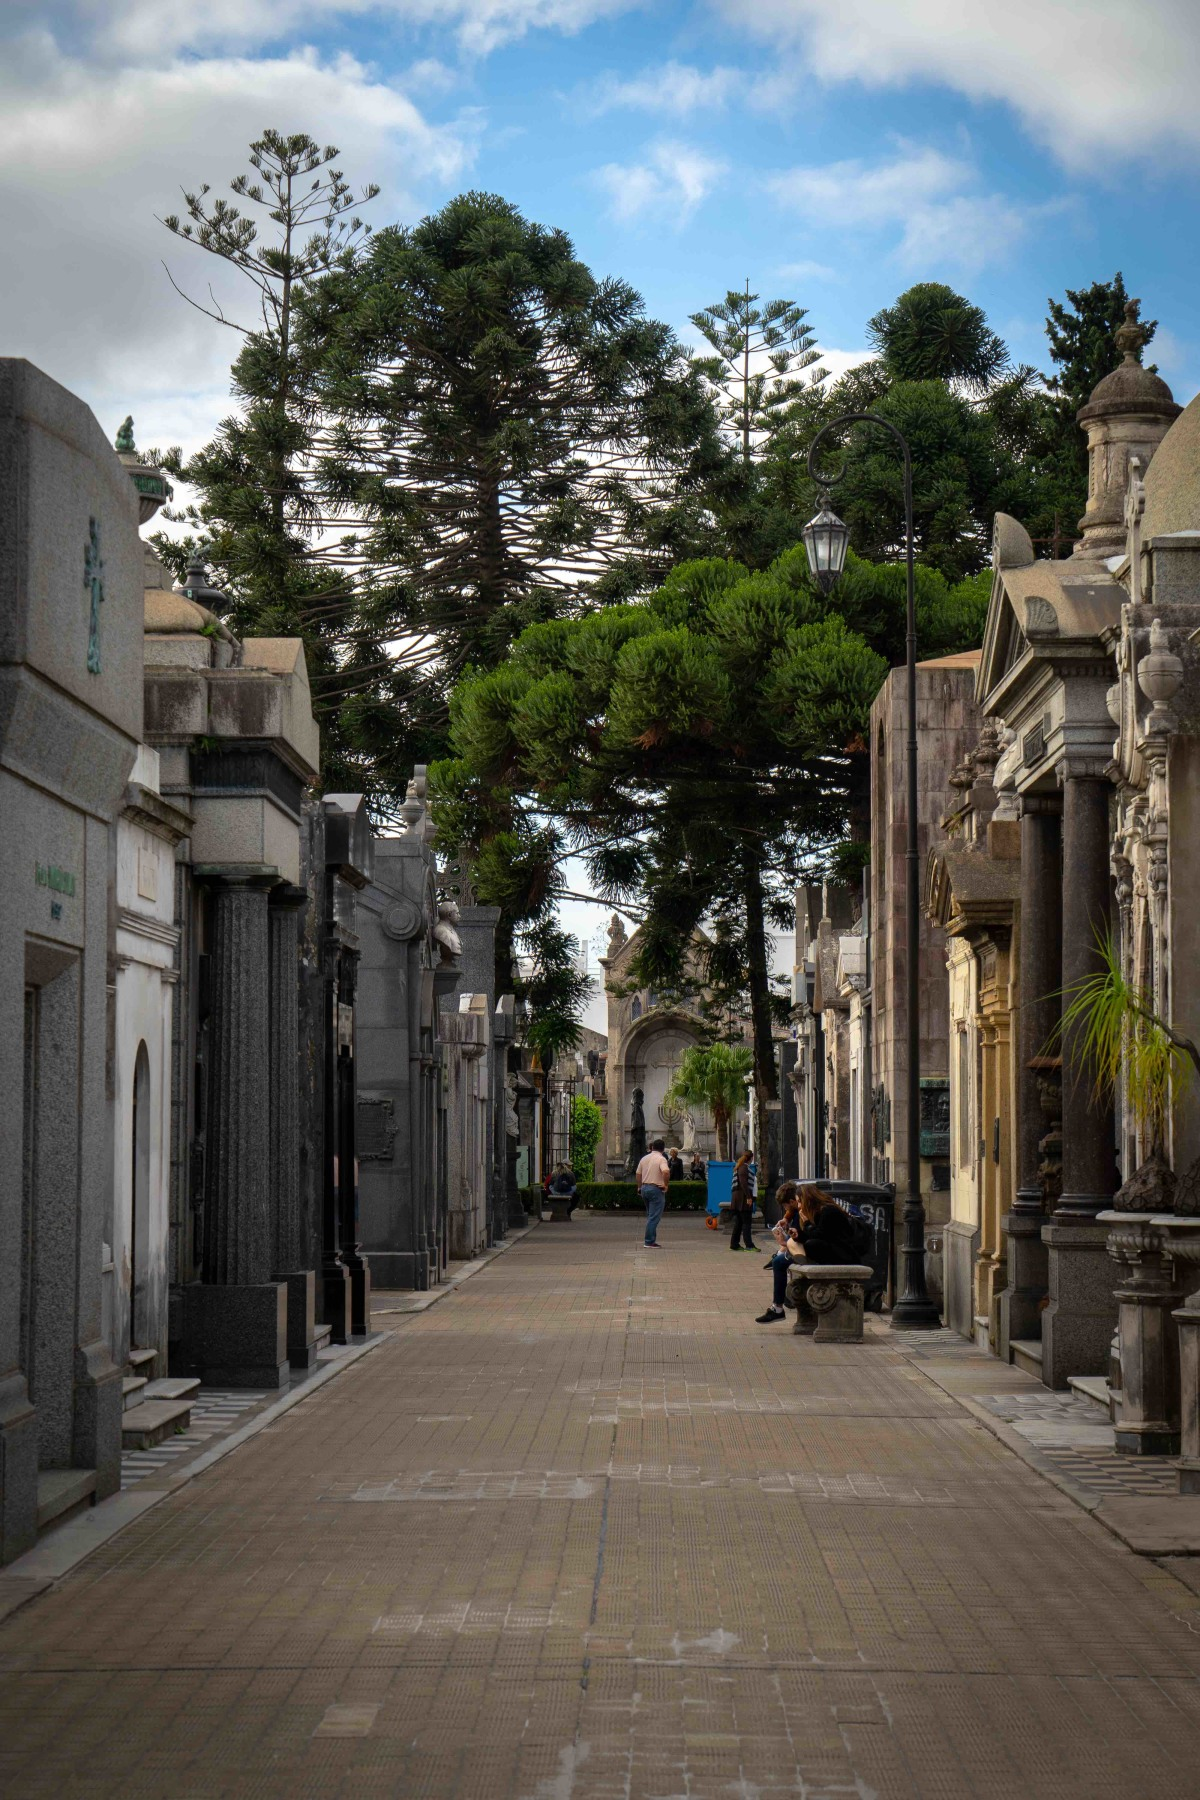 Such a beautiful cemetery though!